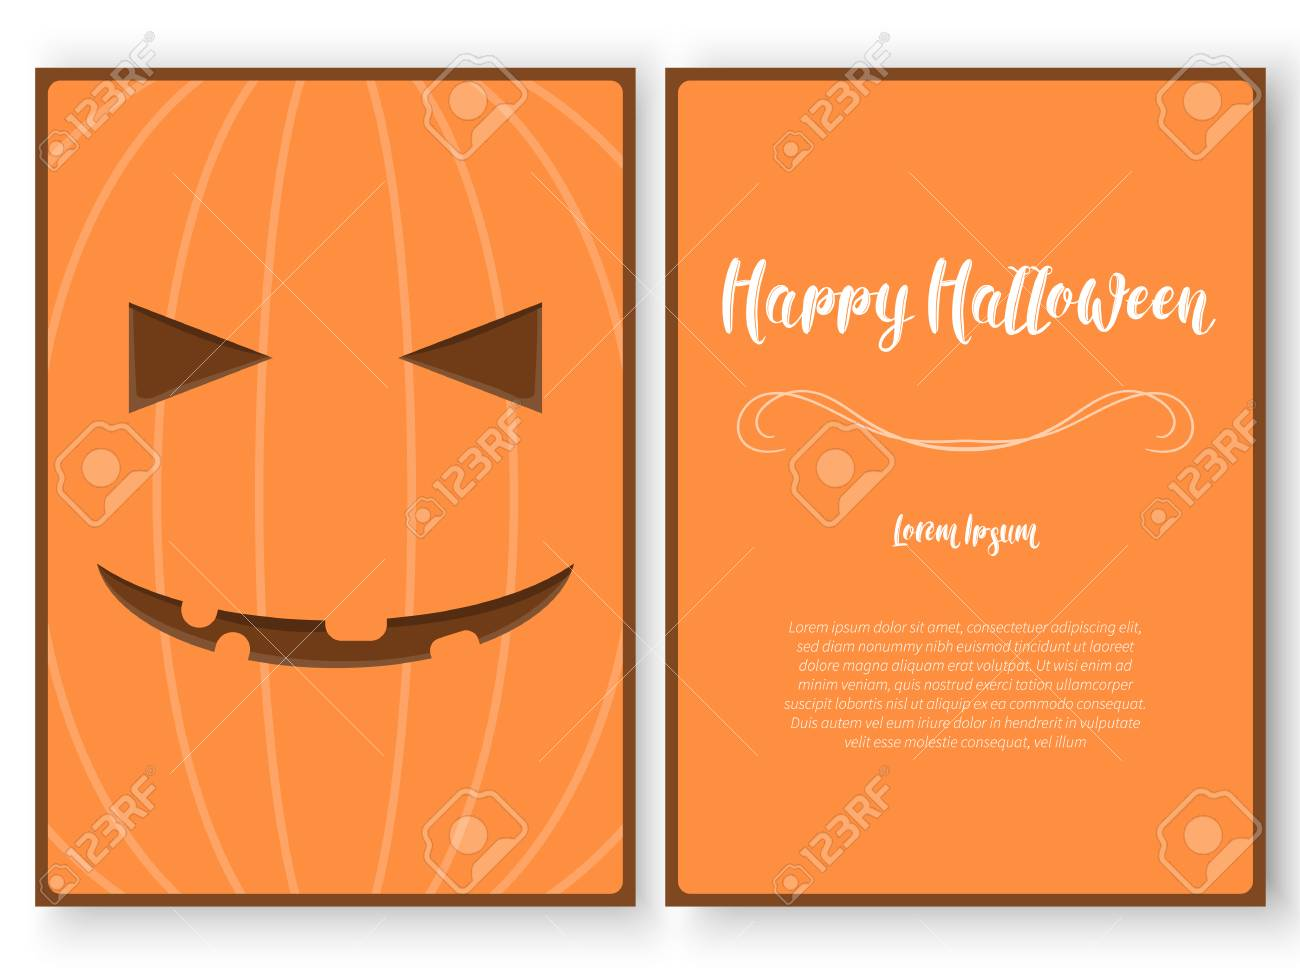 vector halloween card template stylized as a carved pumpkin royalty